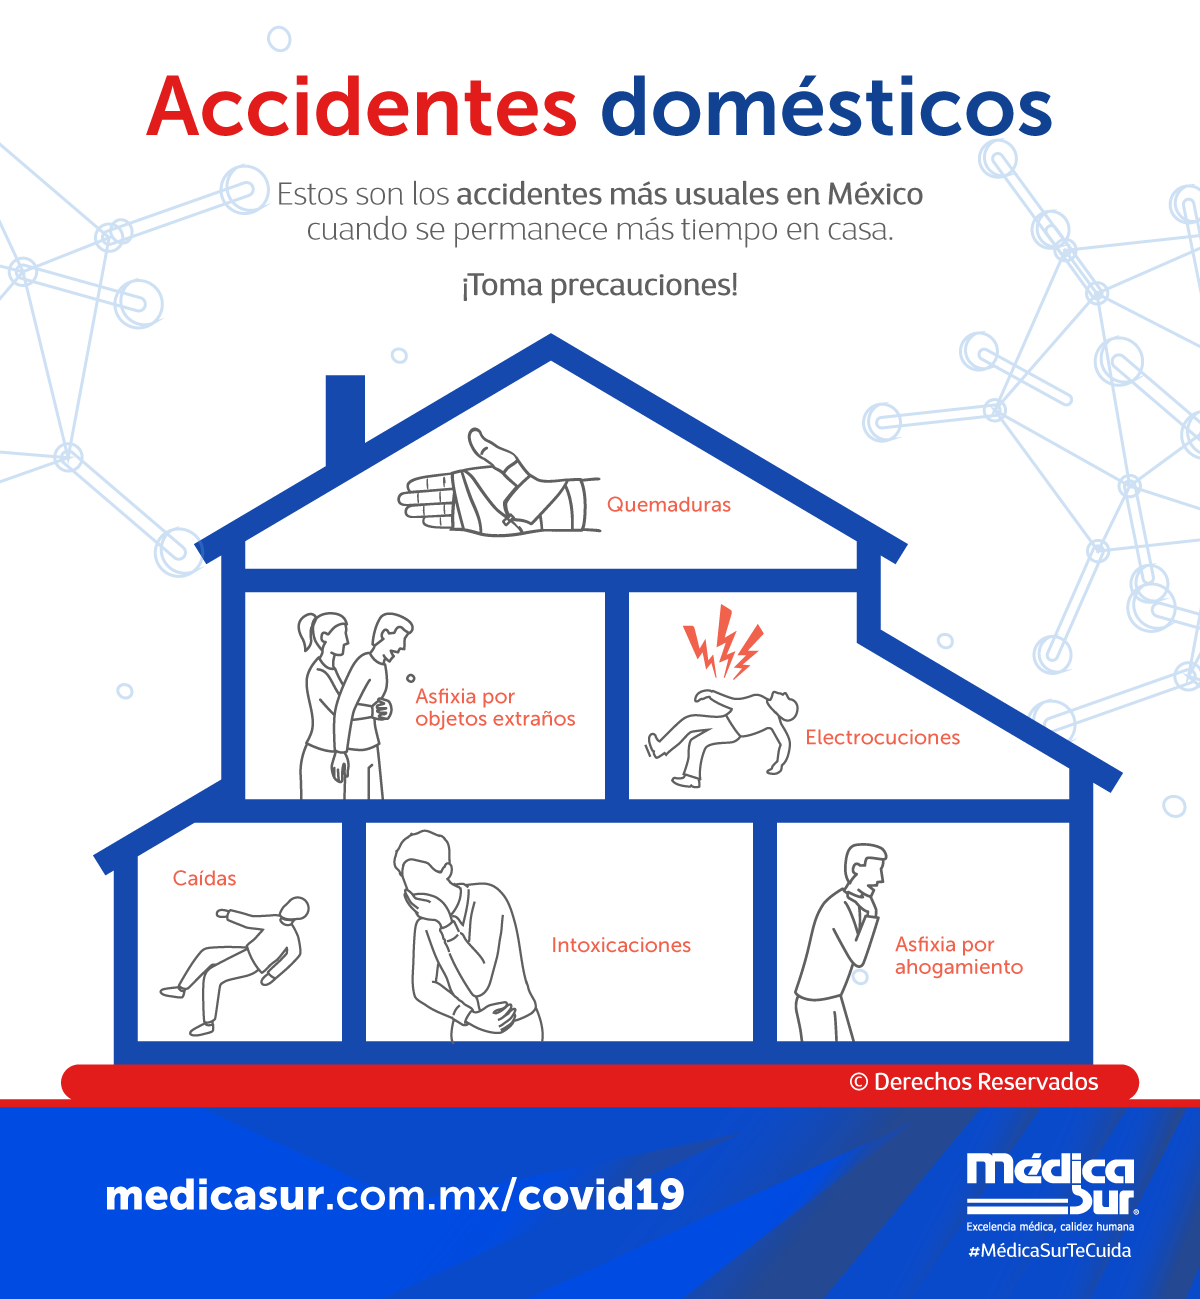 Accidentes domésticos